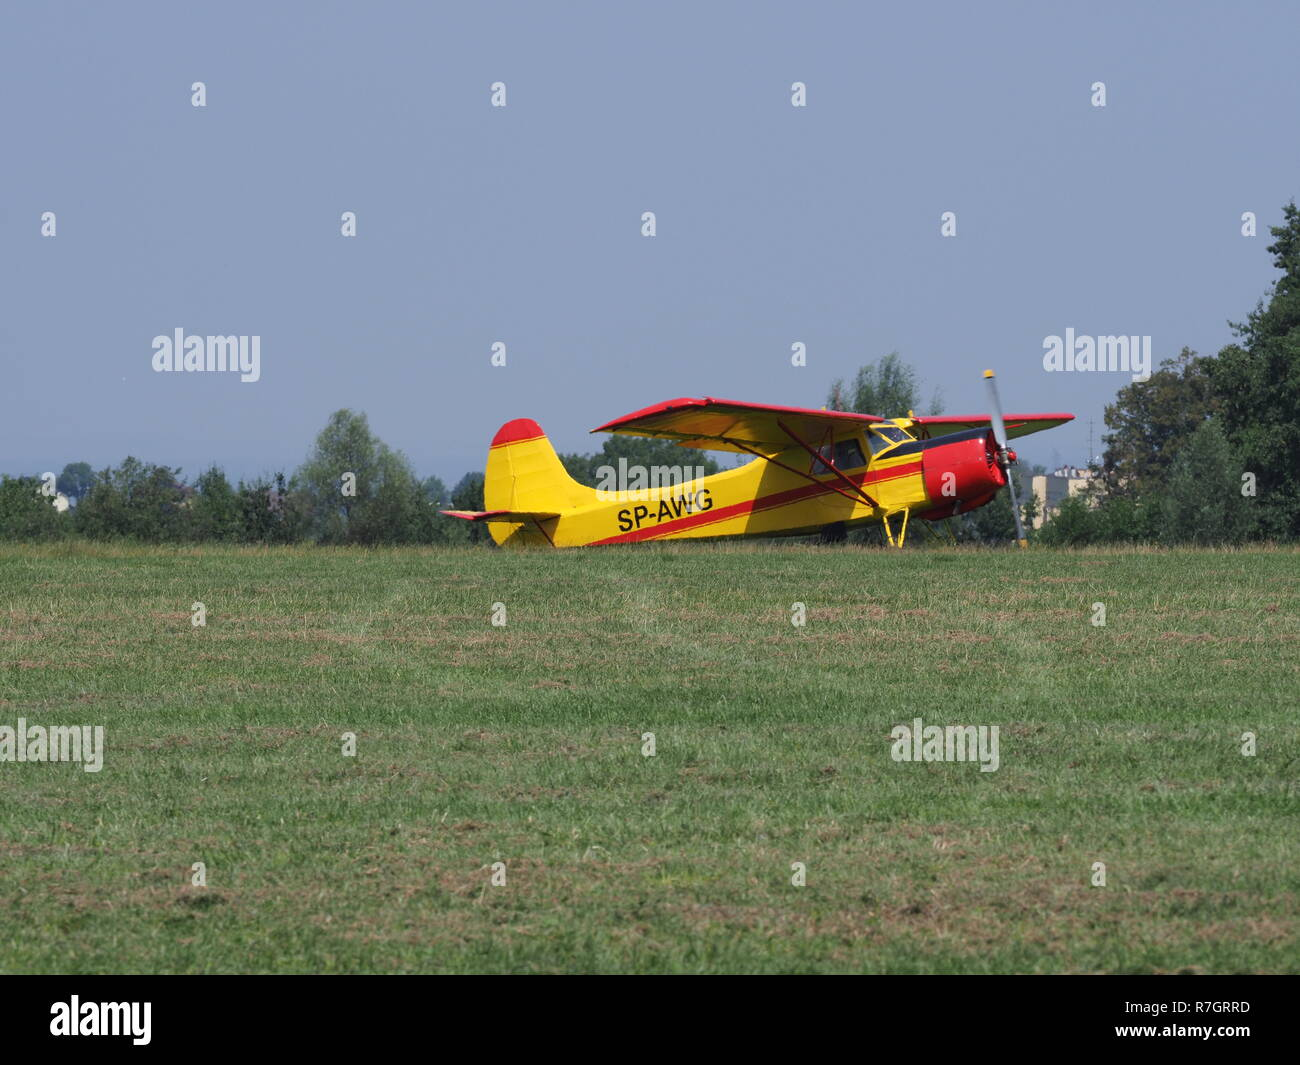 Side of beauty Yakovlev Yak-12M SP-AWG airplane lands on green grassy airfield in european Bielsko-Biala city in Poland - Stock Image